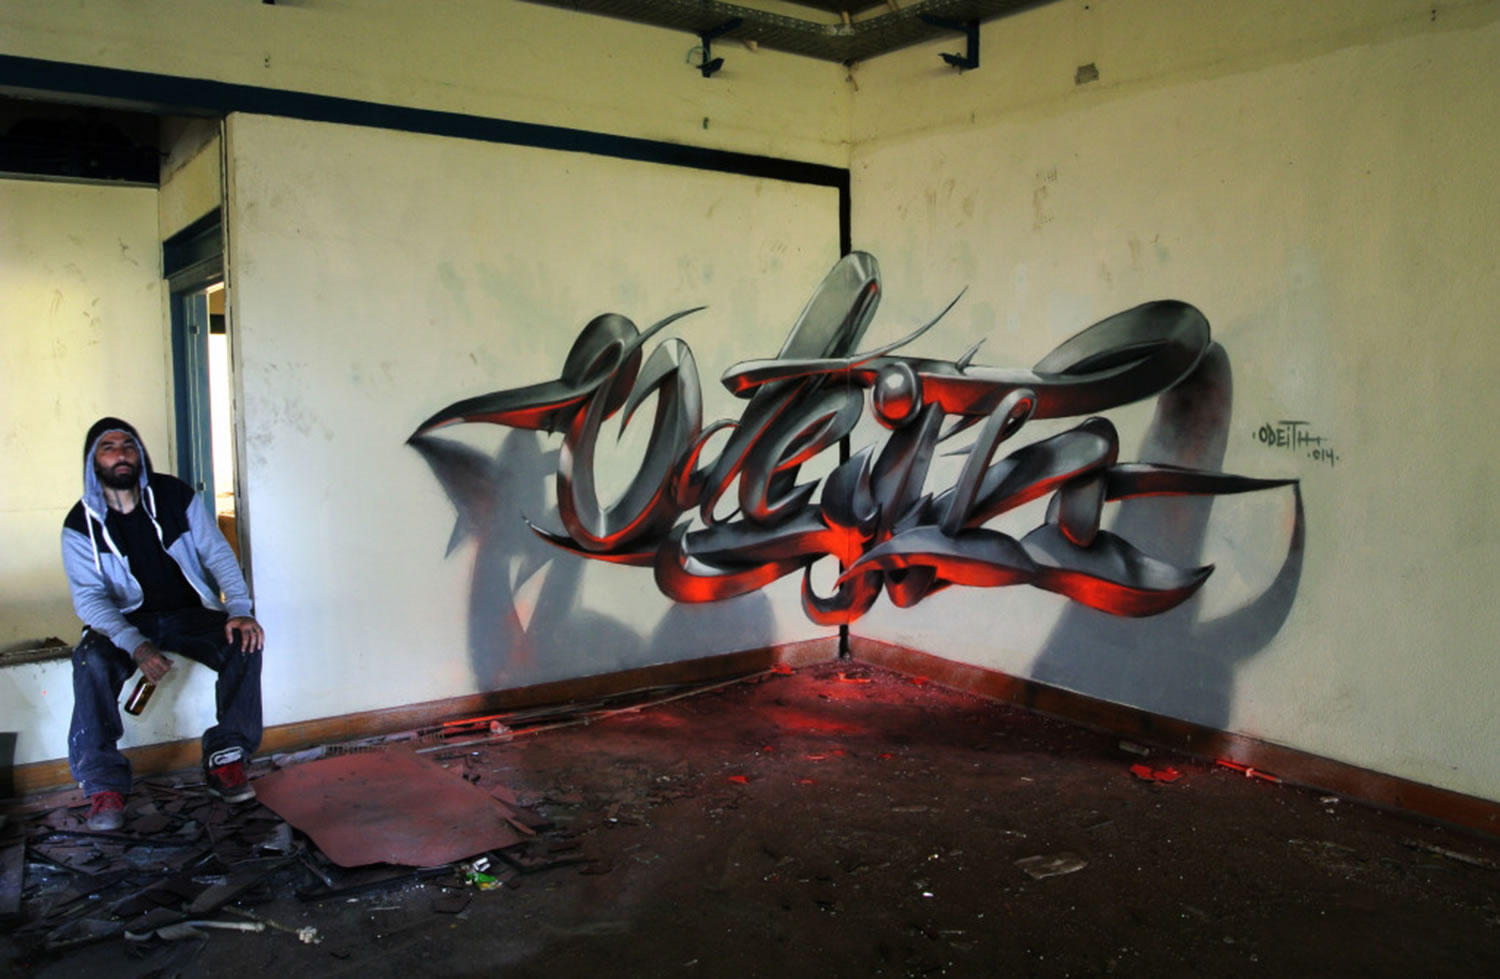 odeith, silver and orange lettering